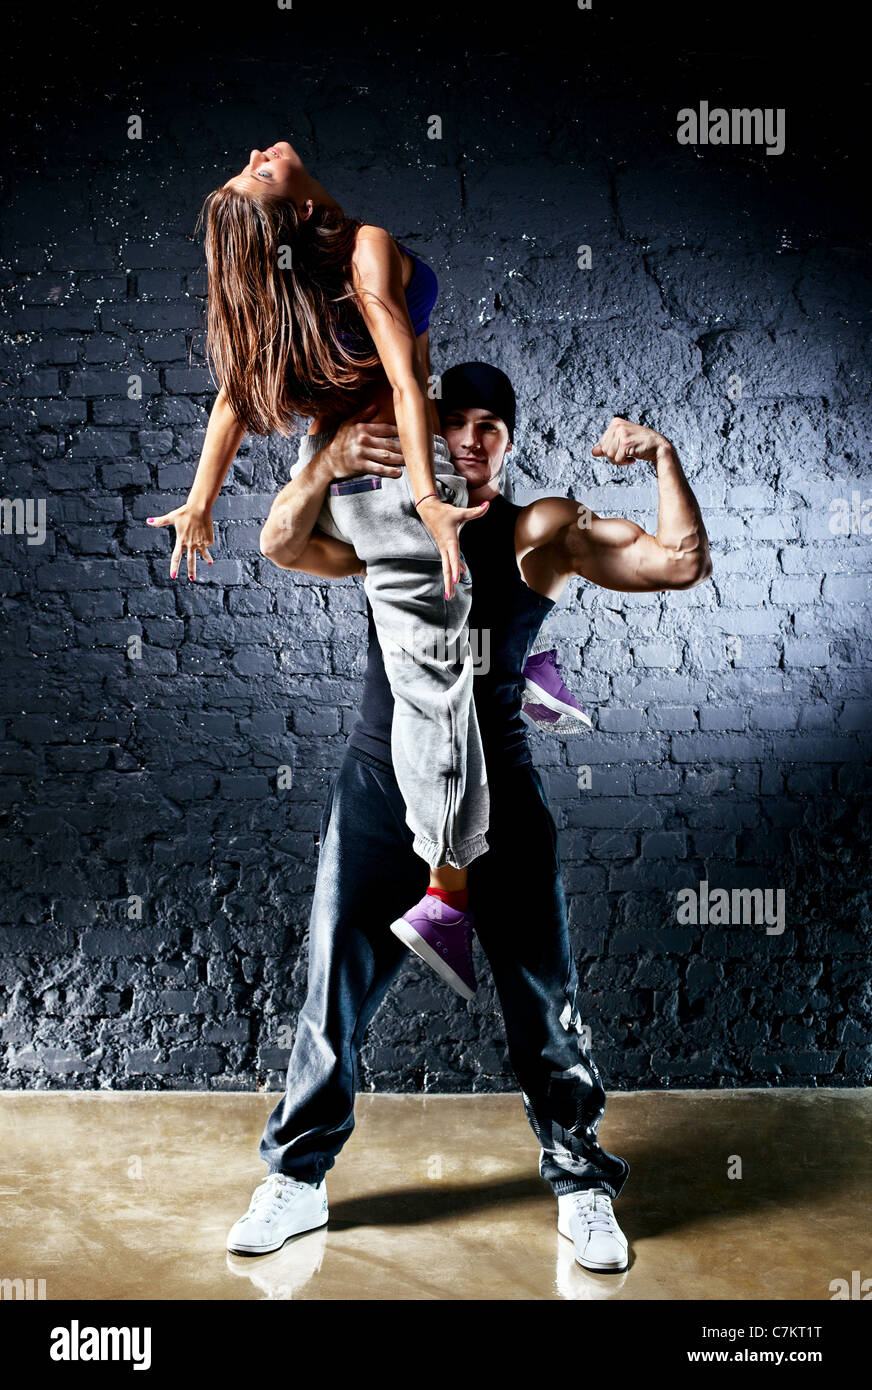 Dancer couple. Contrast colors effect. - Stock Image